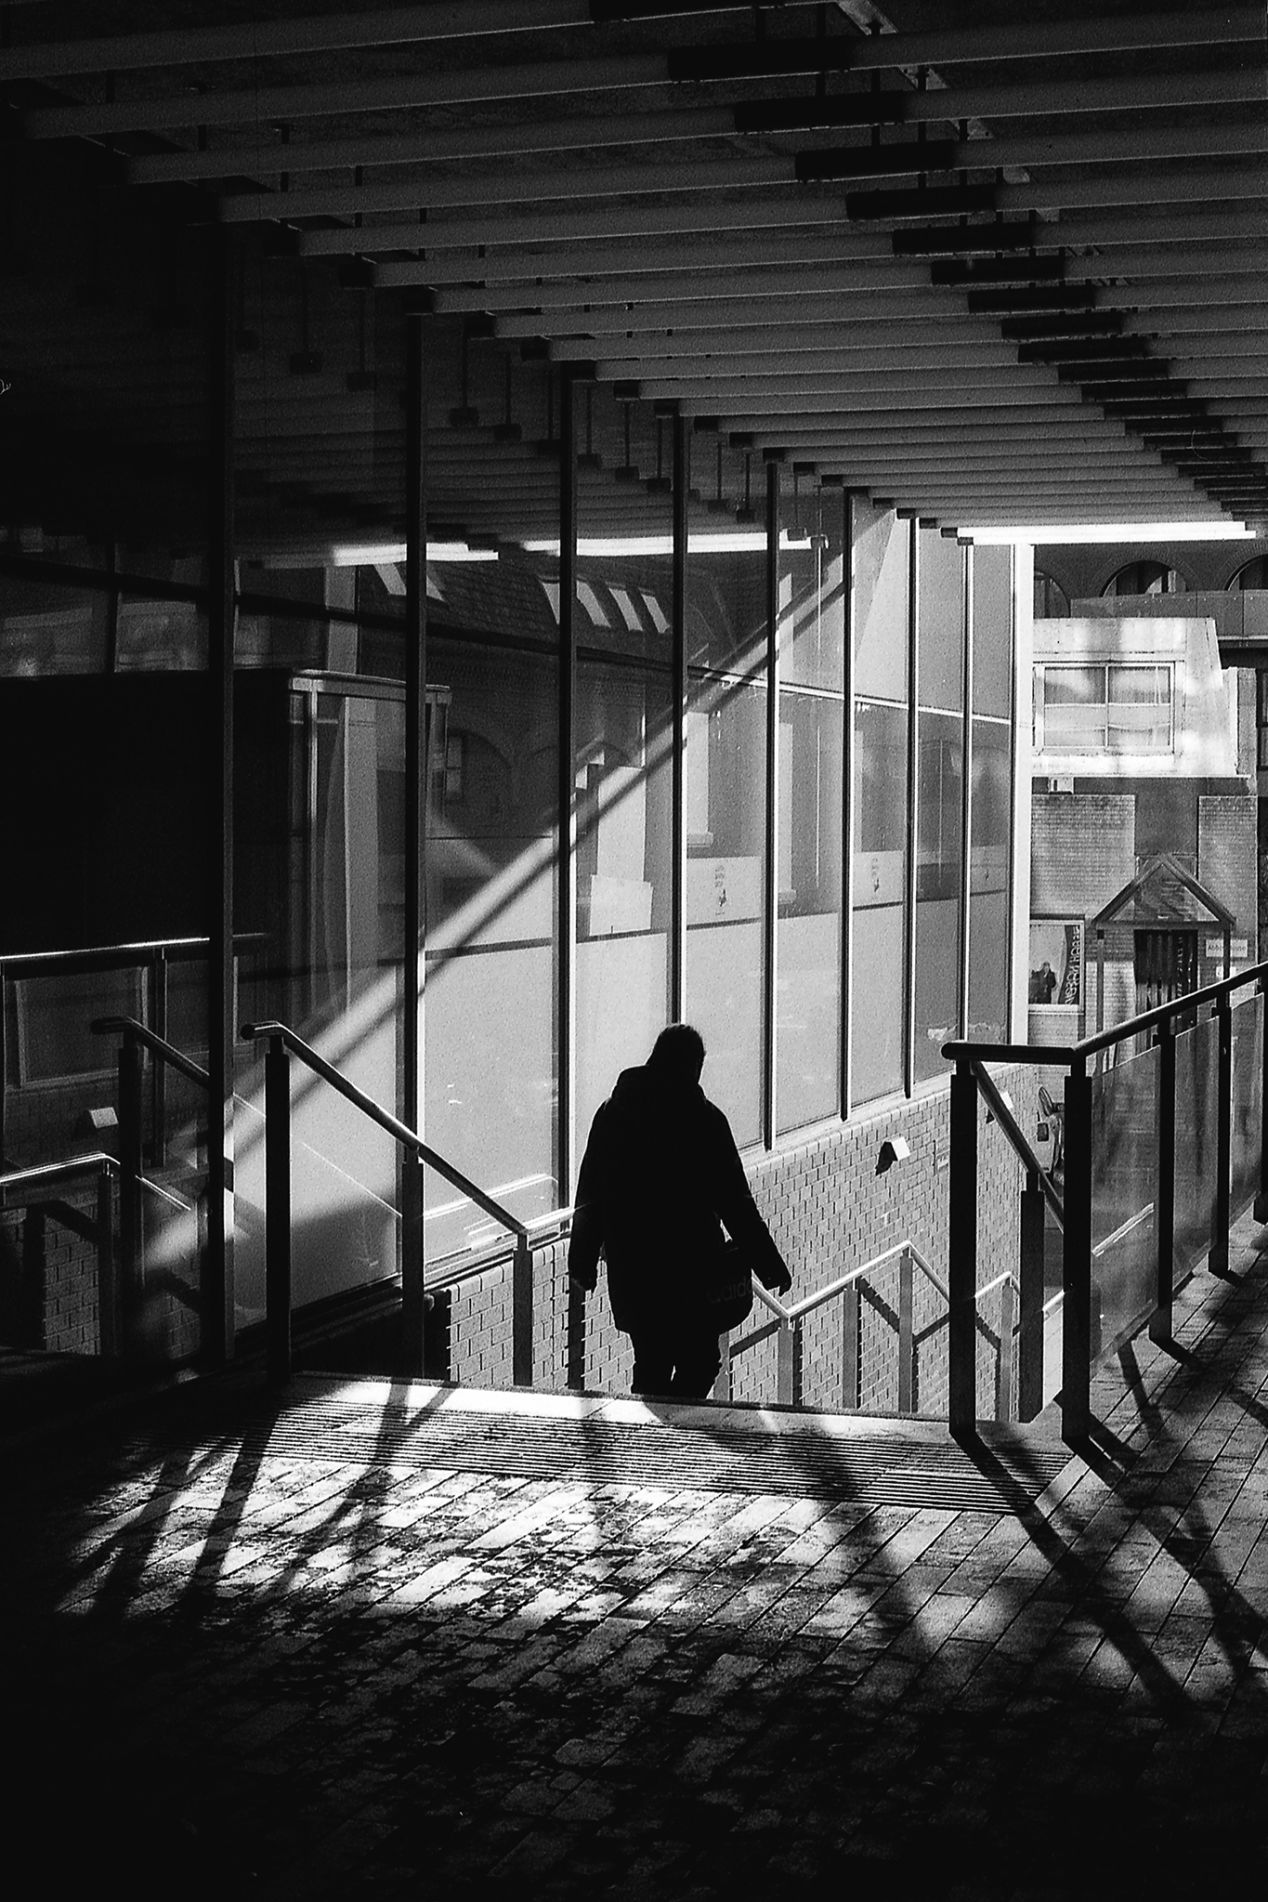 Forbury Offices. Reading, UK. Ilford Delta 400, pushed to 1600